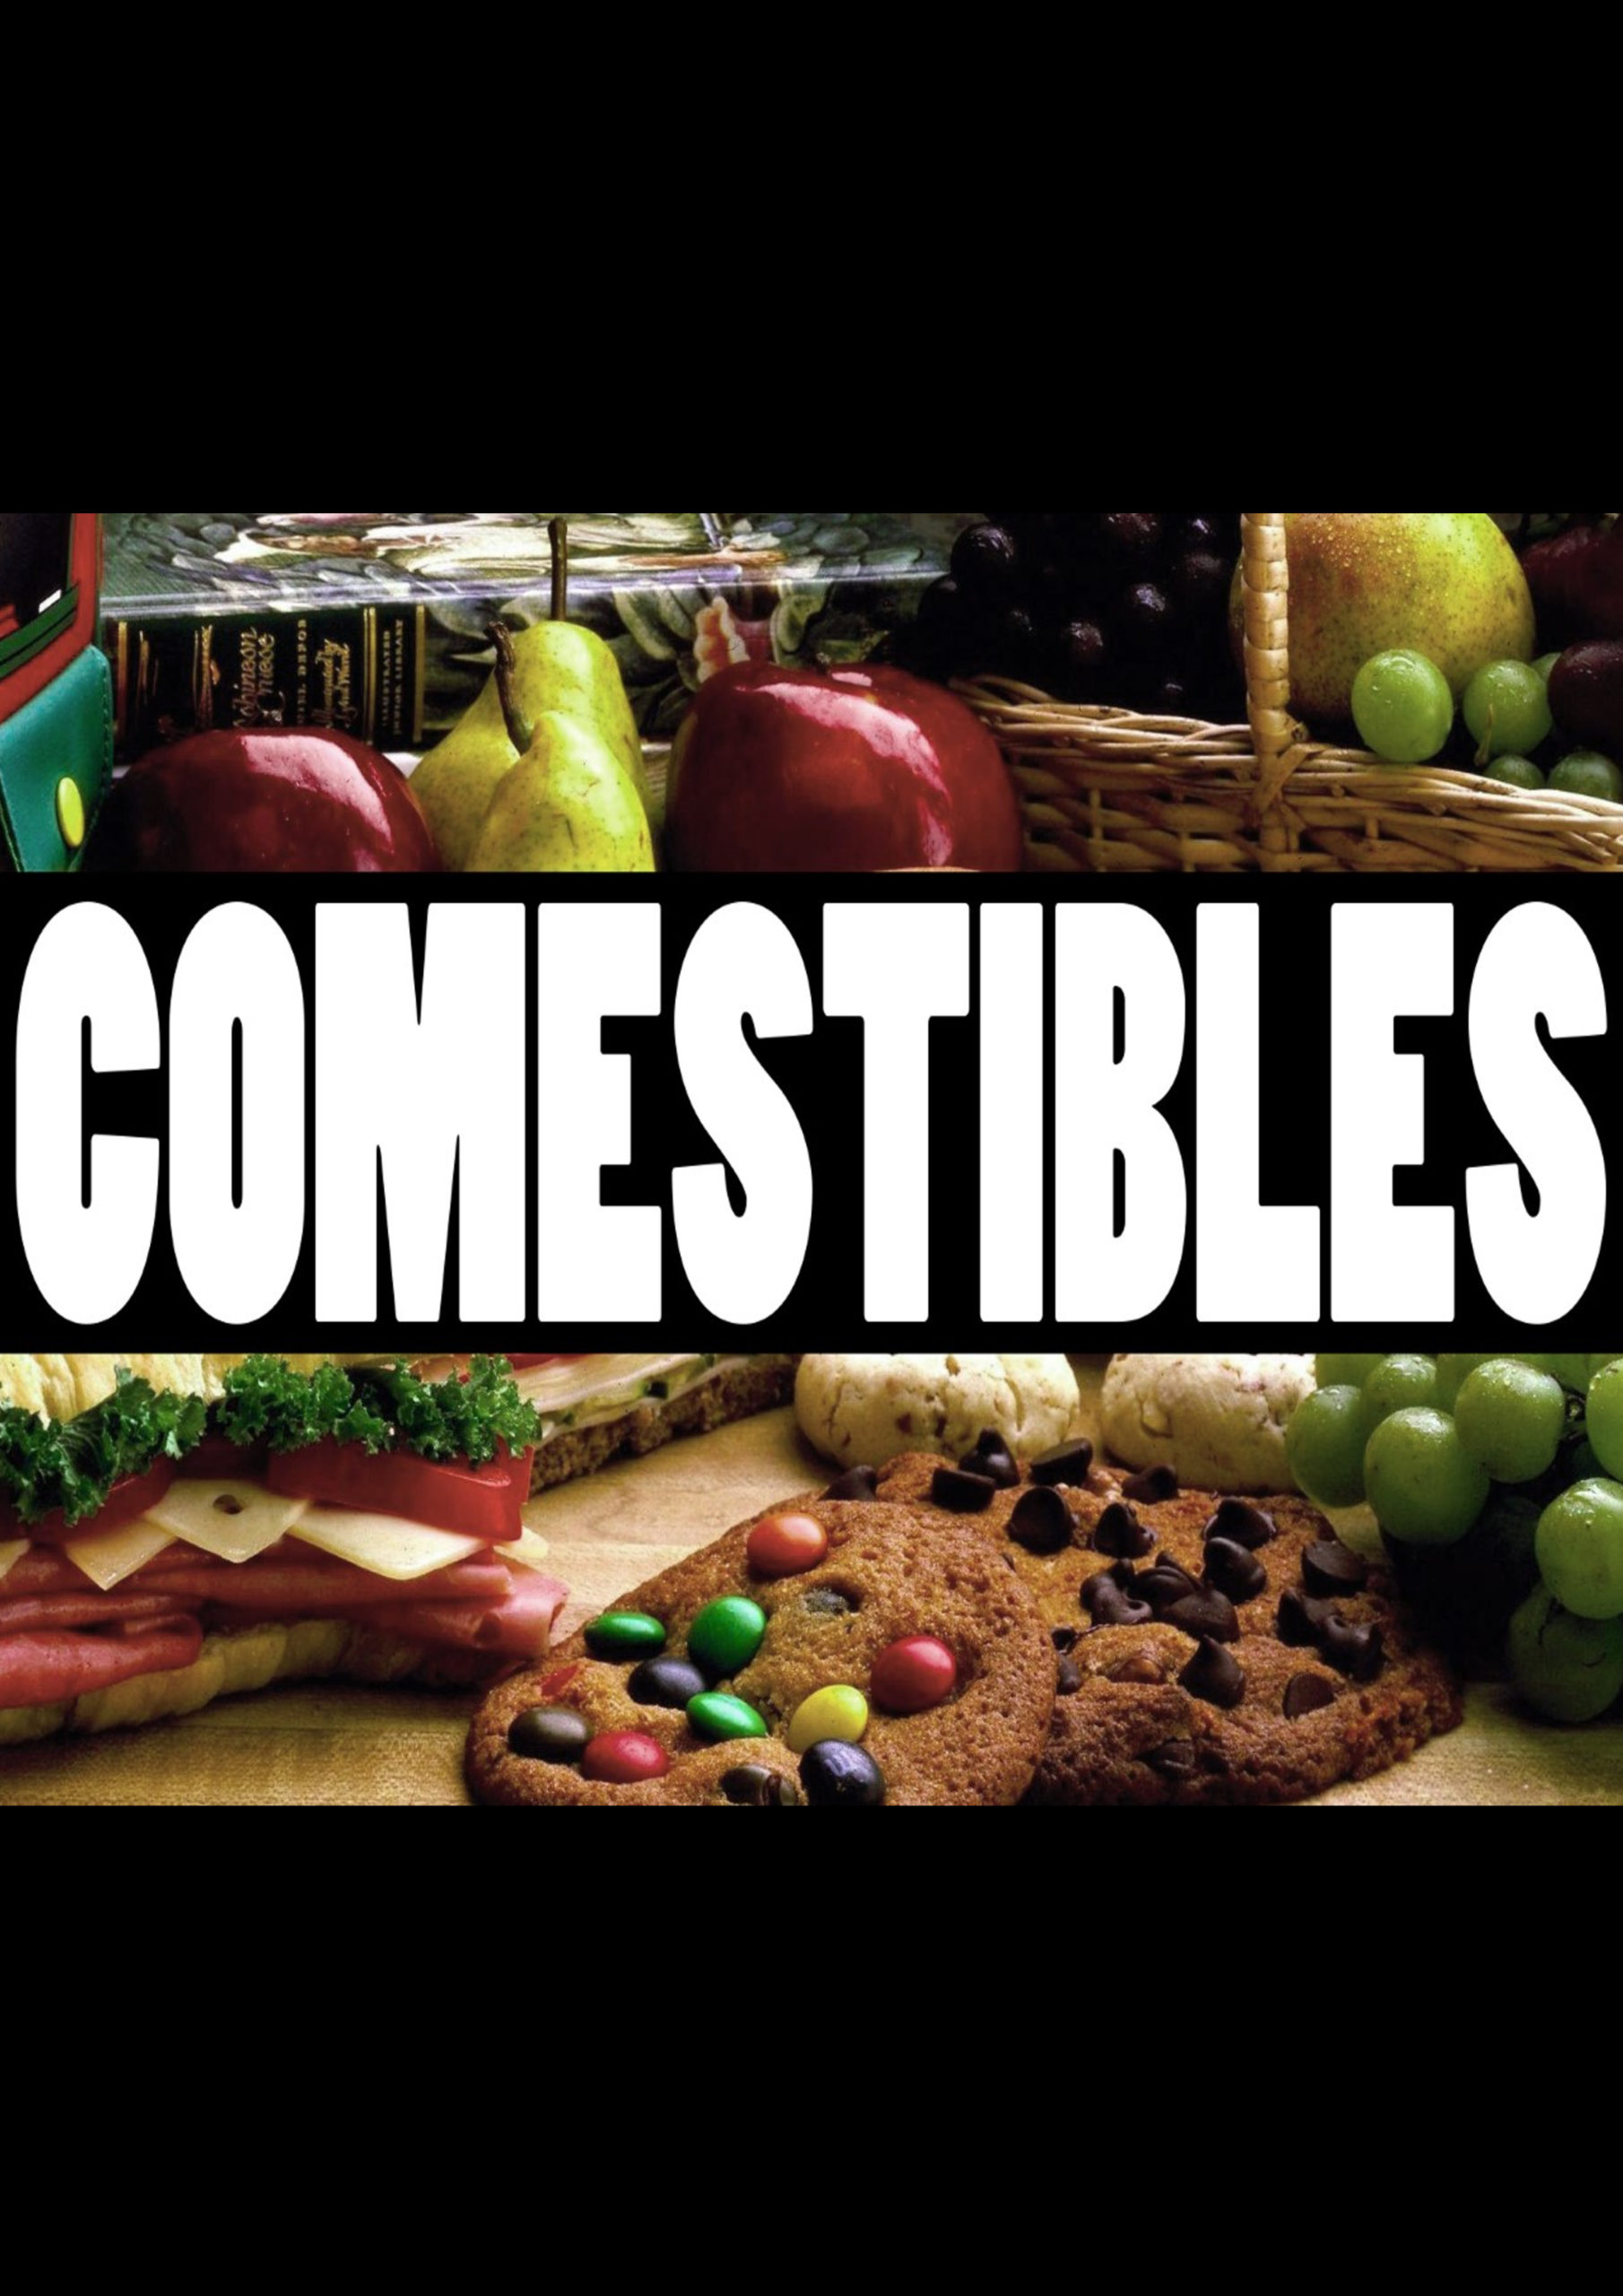 Comestibles image